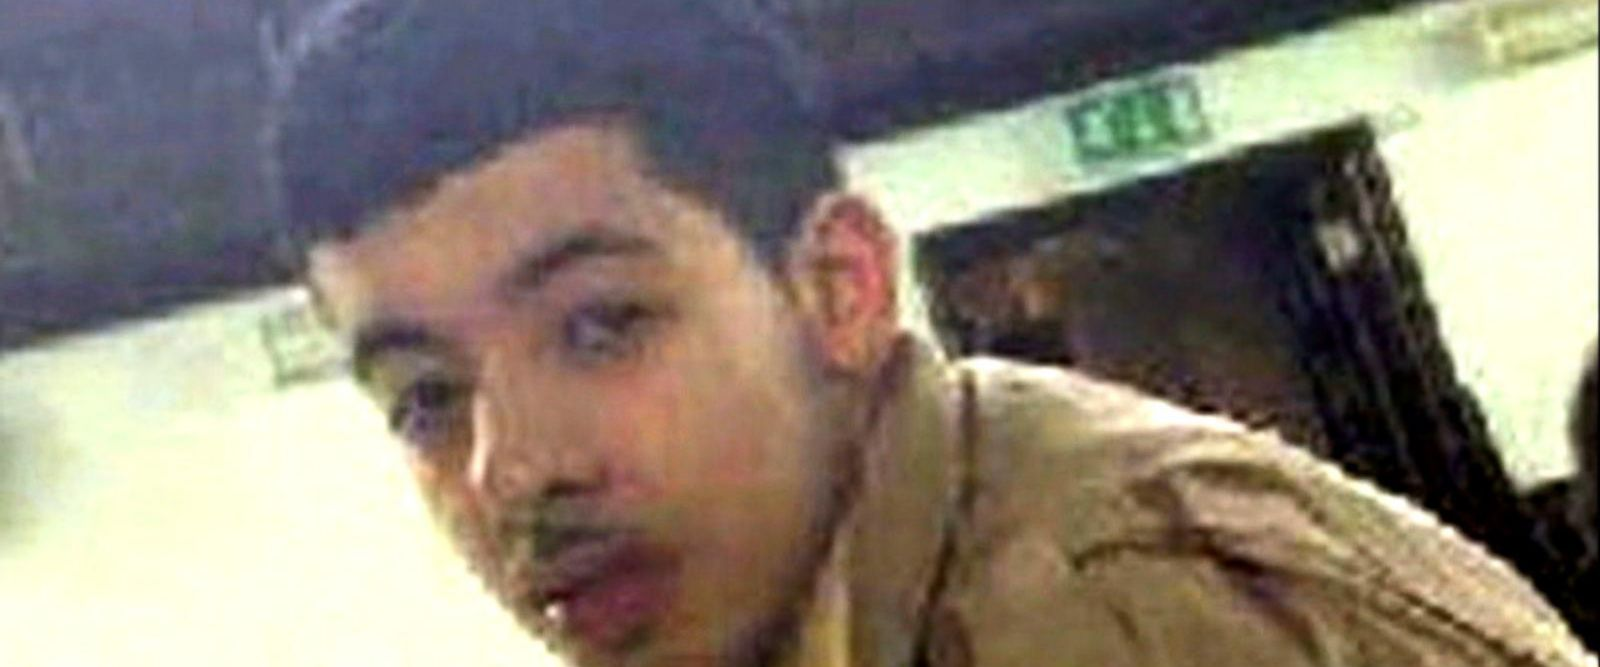 VIDEO: New details about Salman Abedi, suspect in the Manchester bombing attack